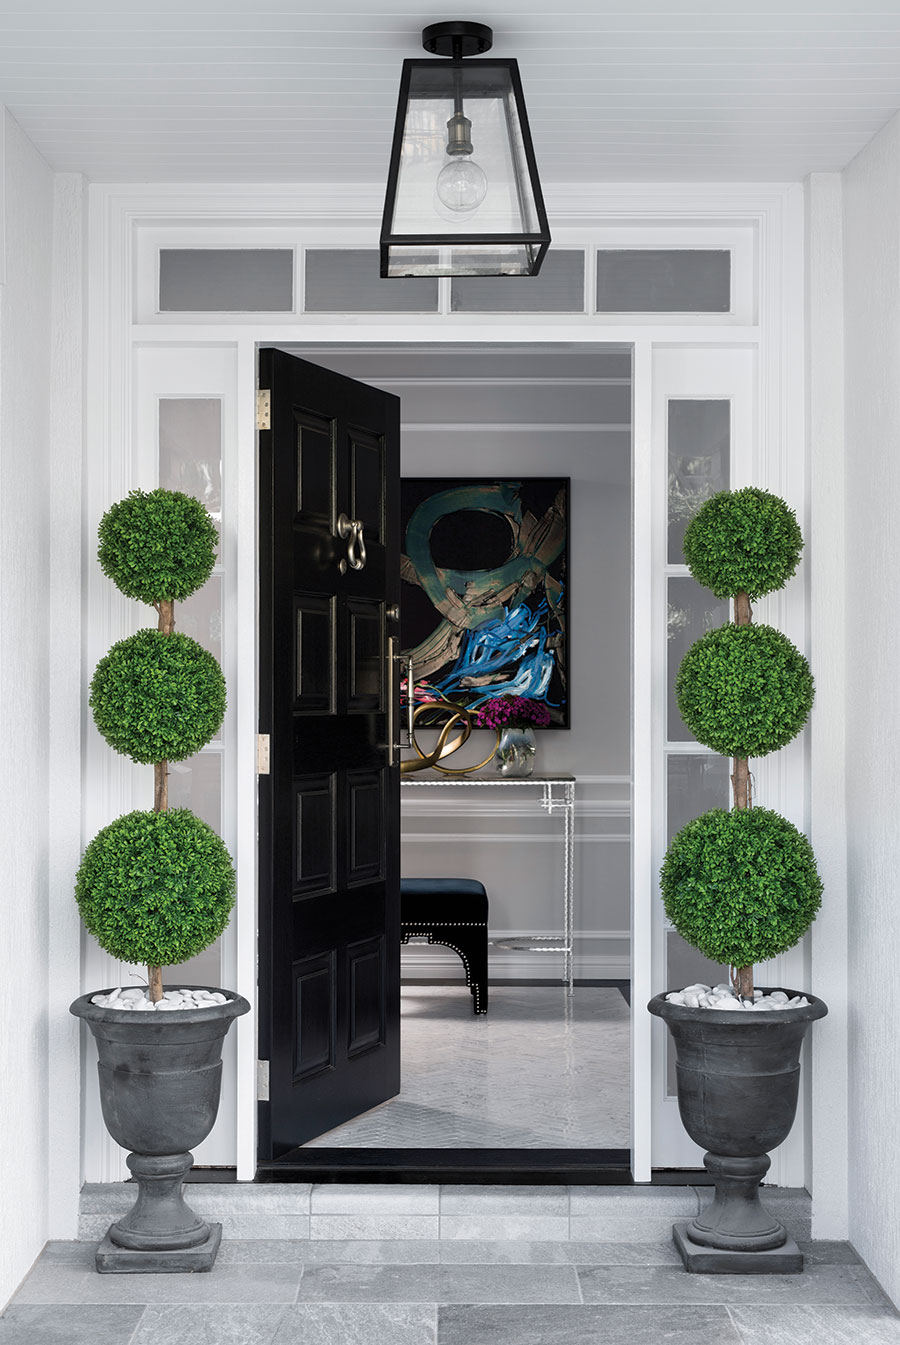 CG Design Studio grand home entrance